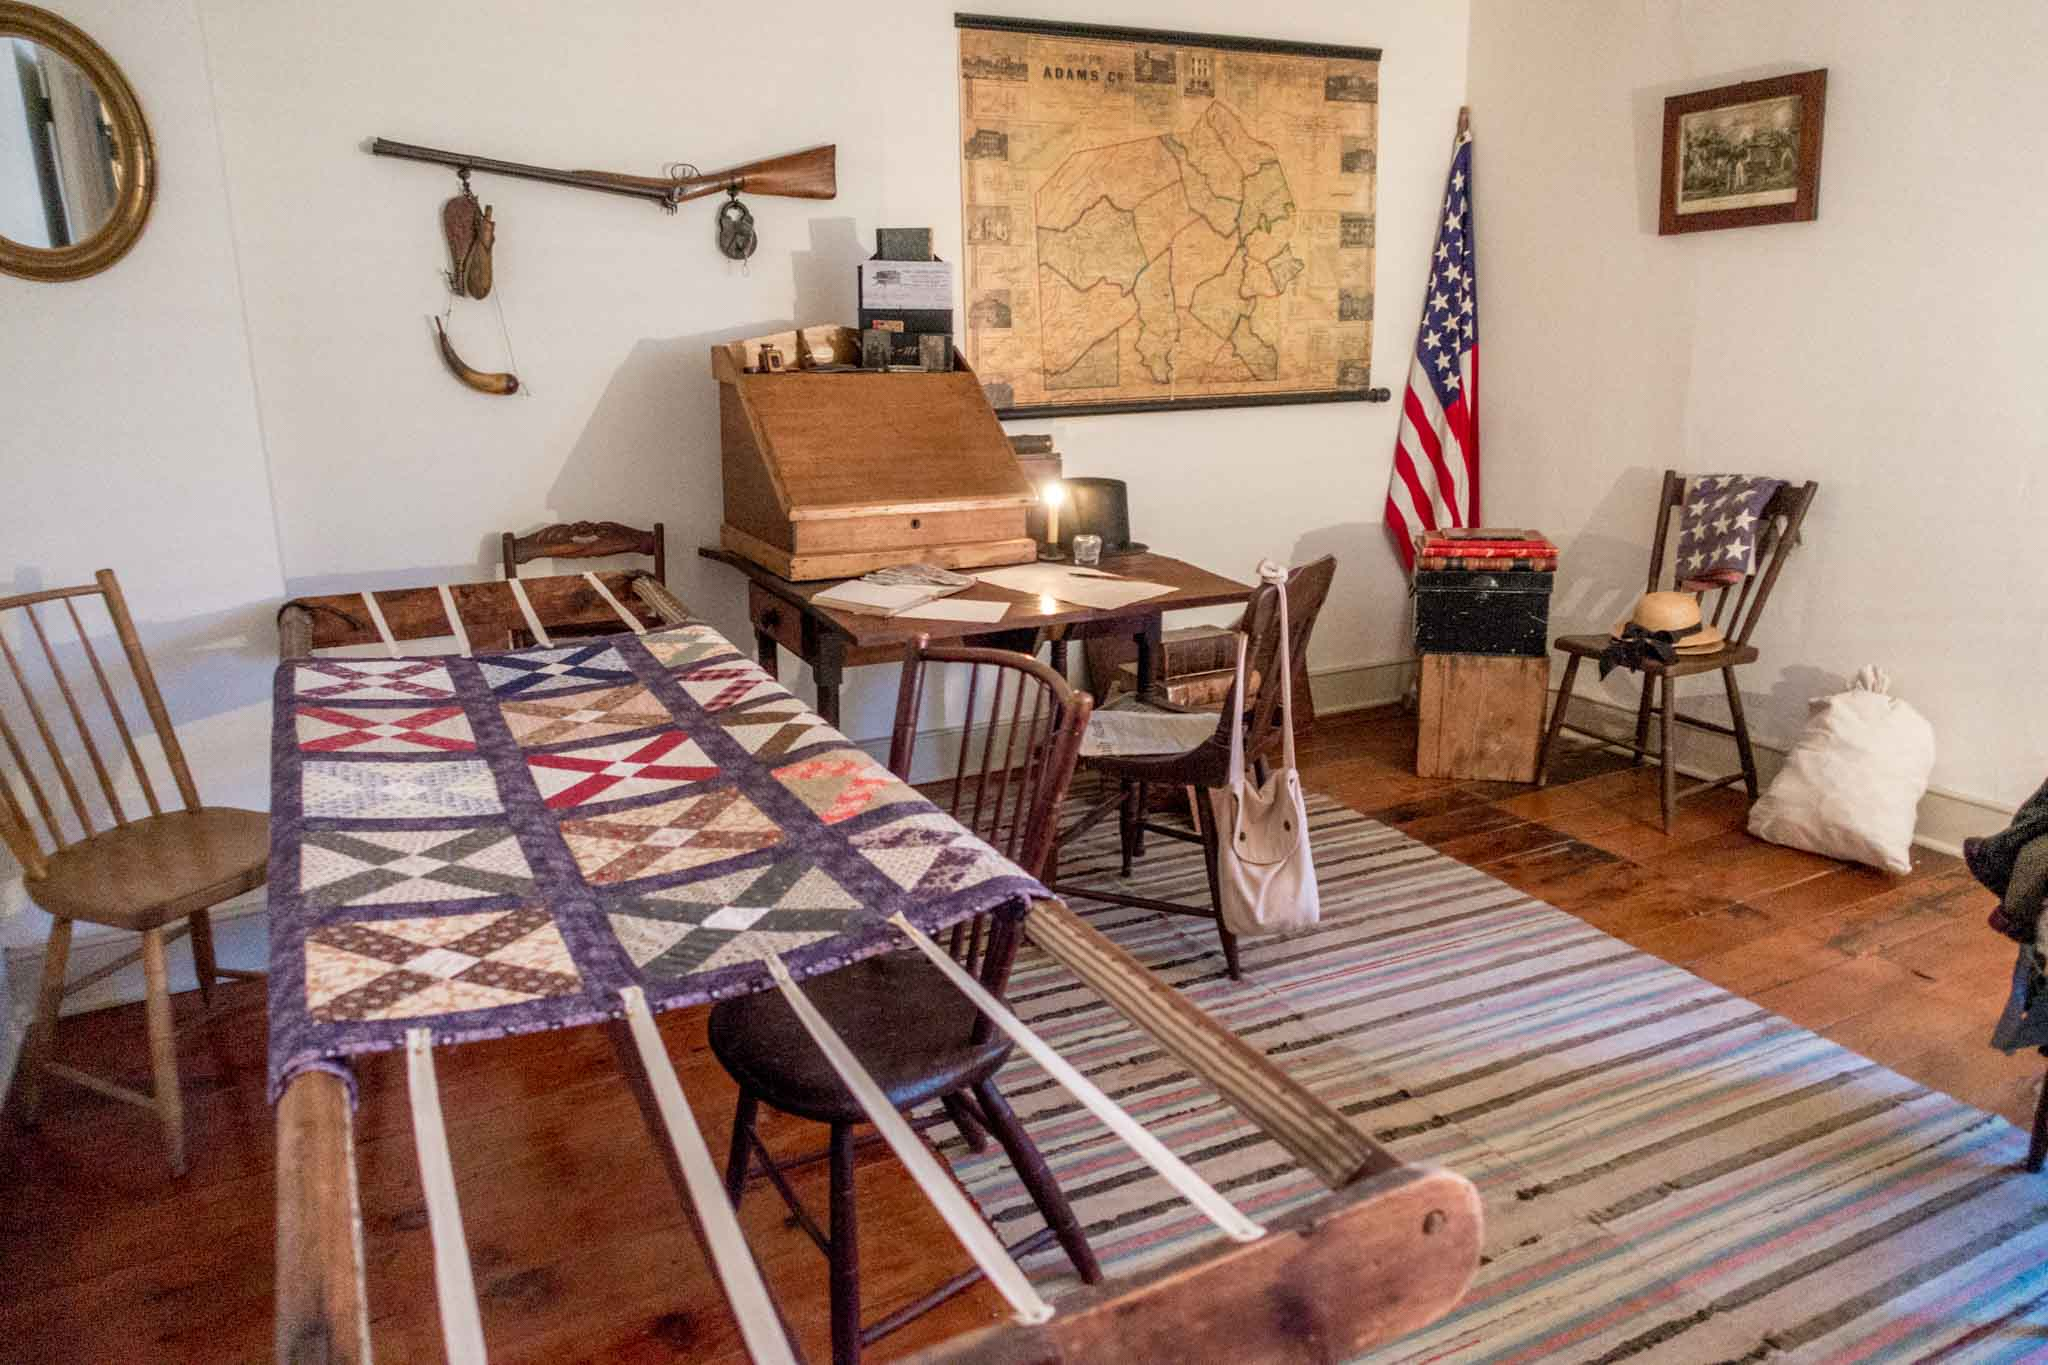 Civil War-era quilting room with desk and map